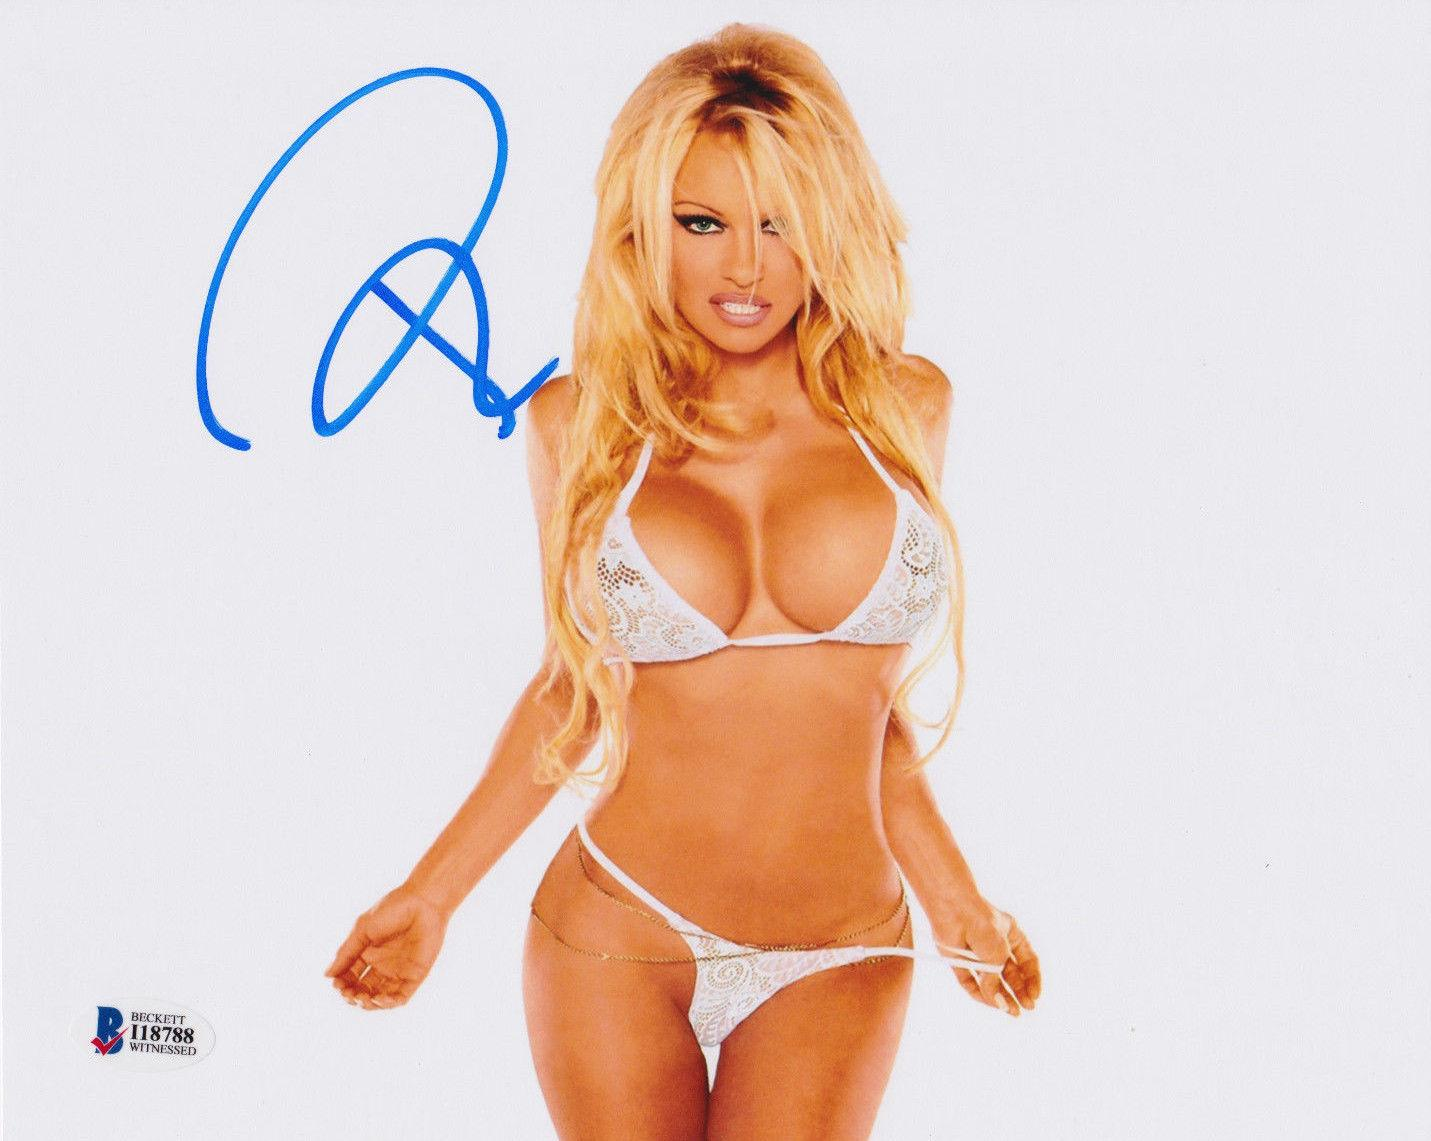 pamela anderson signed 8x10 photo pam sexy white lingerie beckett bas. Black Bedroom Furniture Sets. Home Design Ideas